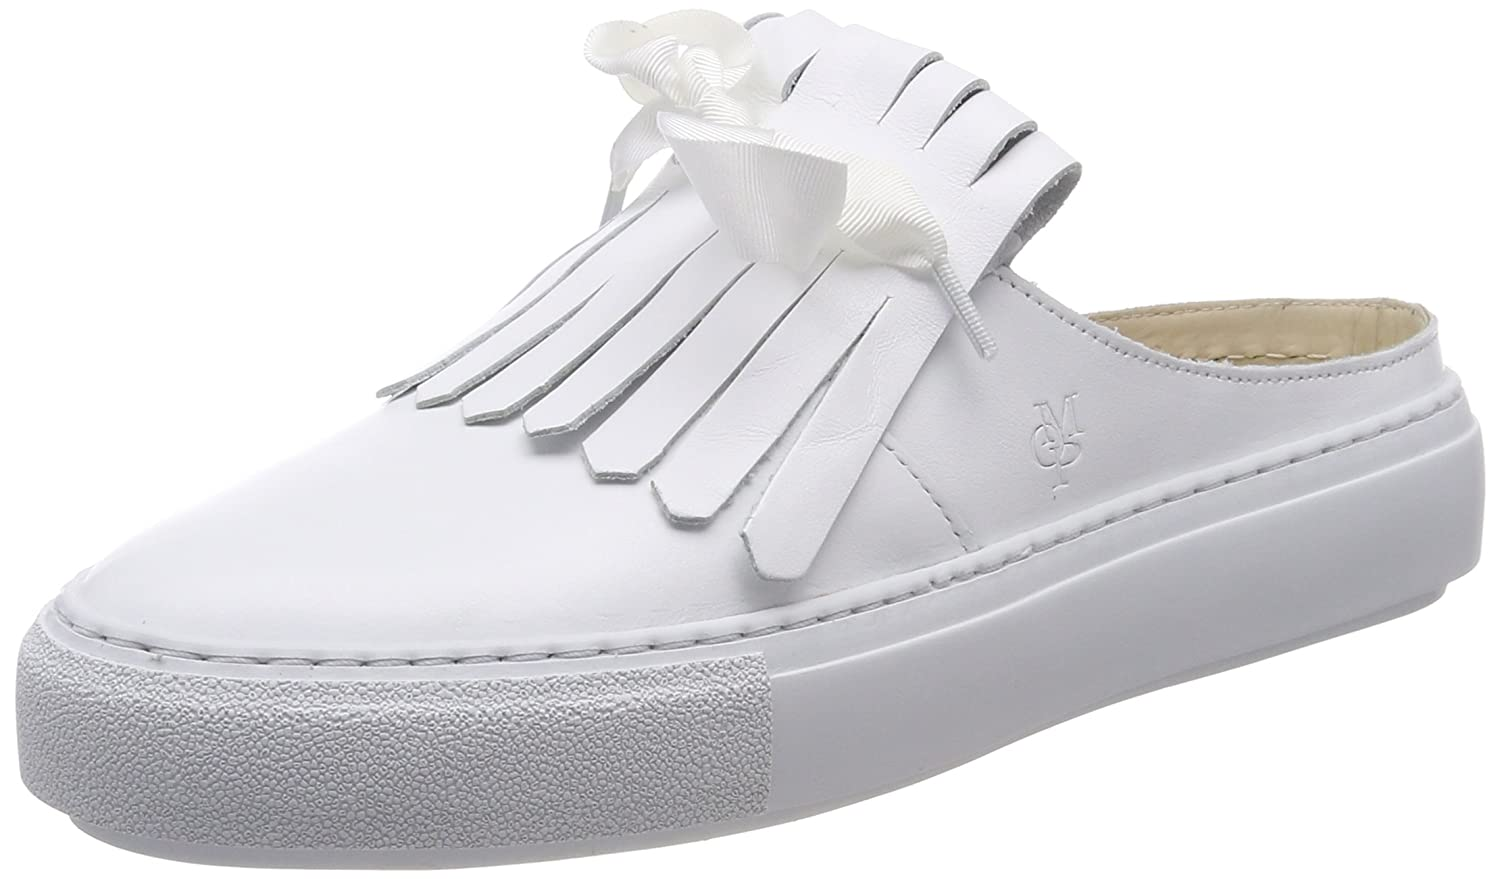 Womens Sneaker 80214403701102 Trainers Marc O'Polo jDQIiZ